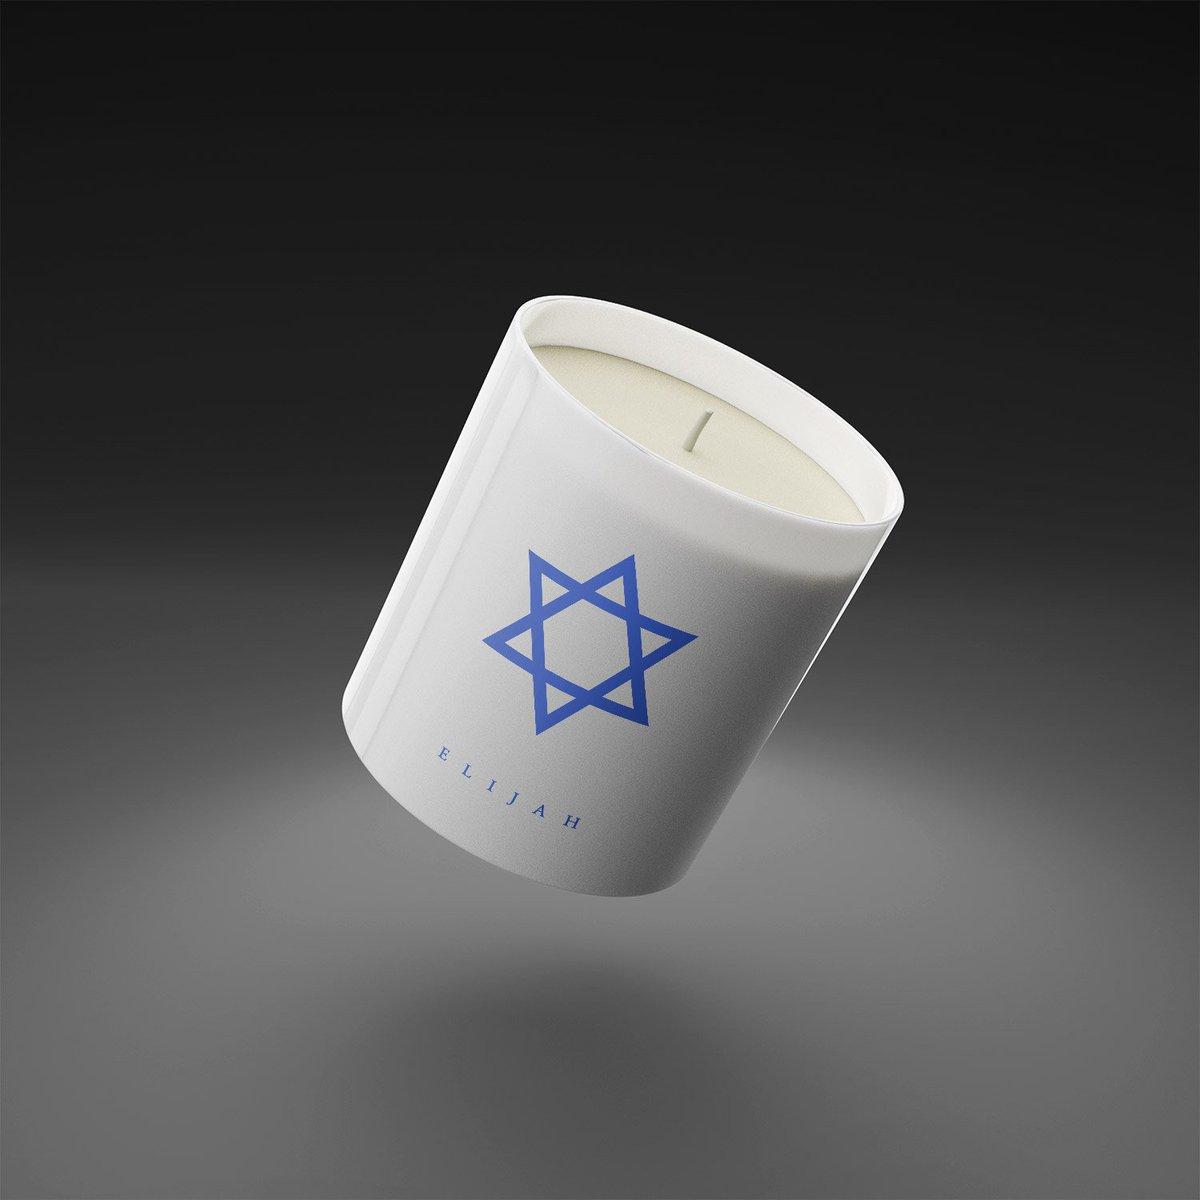 The Star of David is commonly used to represent both Judaism and Israel. It was originally designed to resemble King David's shield, and Kabbalists have popularized the symbol as a protection against evil spirits✡️